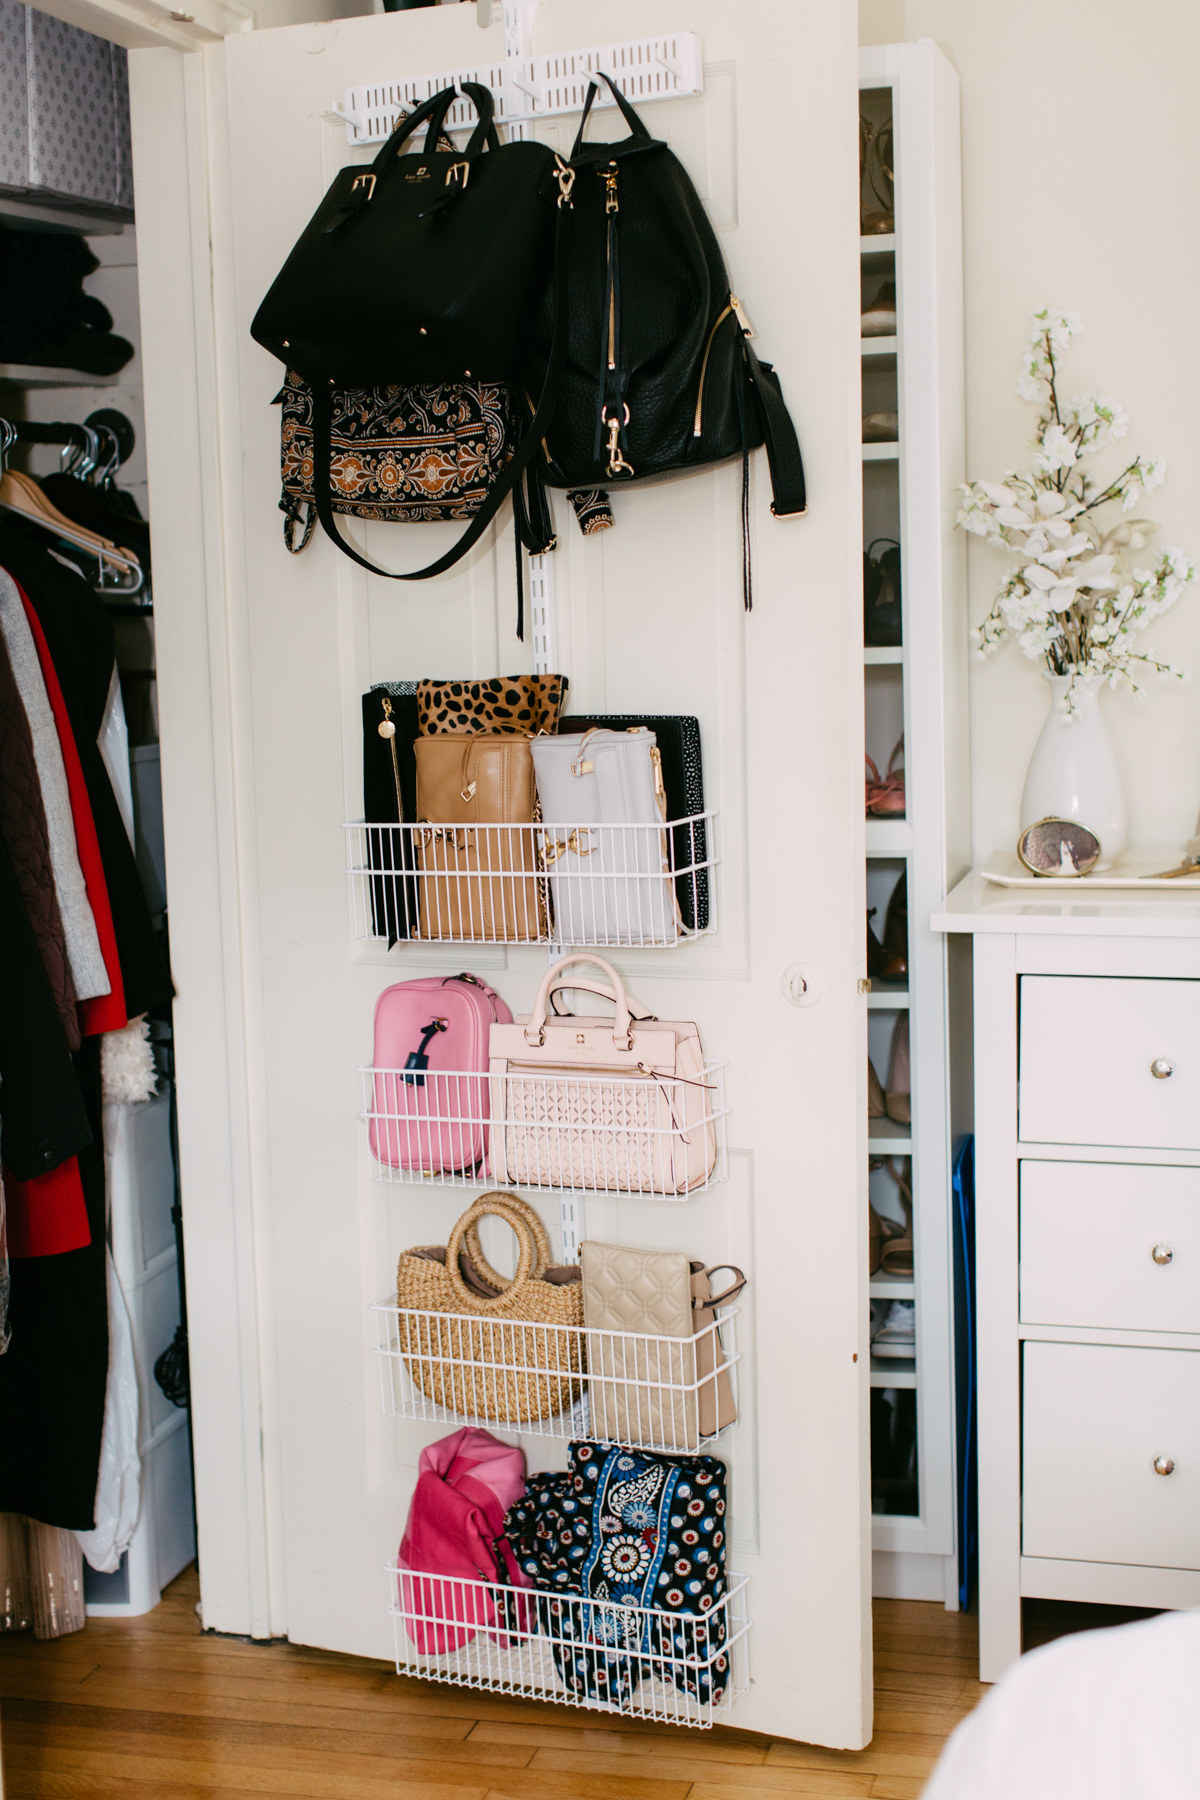 Blogger's closet door with hook rack at the top for three bags, then four wire shelves filled with clutches and other purses and bags